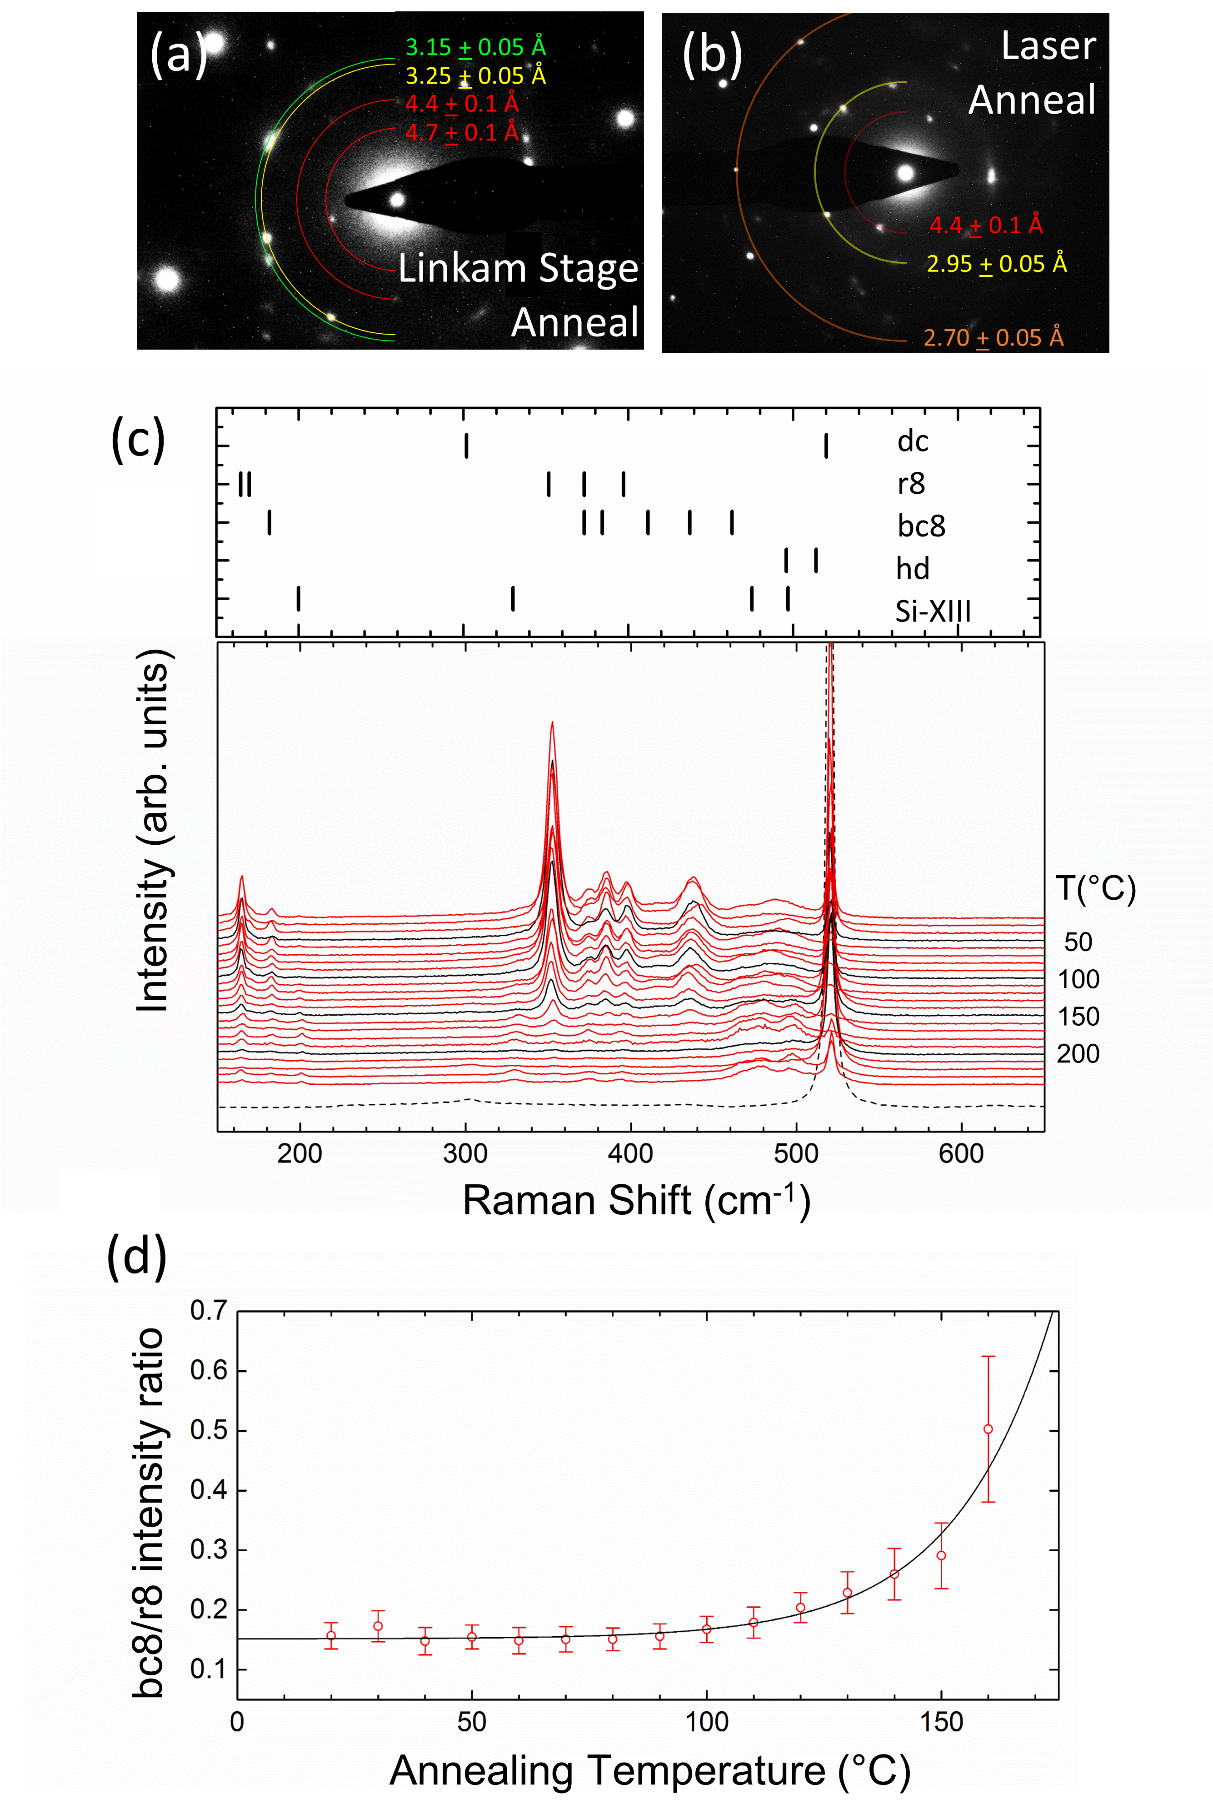 Electron diffraction reflections from samples that had undergone (a) laser and (b) hot stage annealing. (c) Measured Raman peaks identifying each silicon phase at various and (d) The intensity ratio in Raman spectra for the bc8 and r8 phase as a function of temperature change